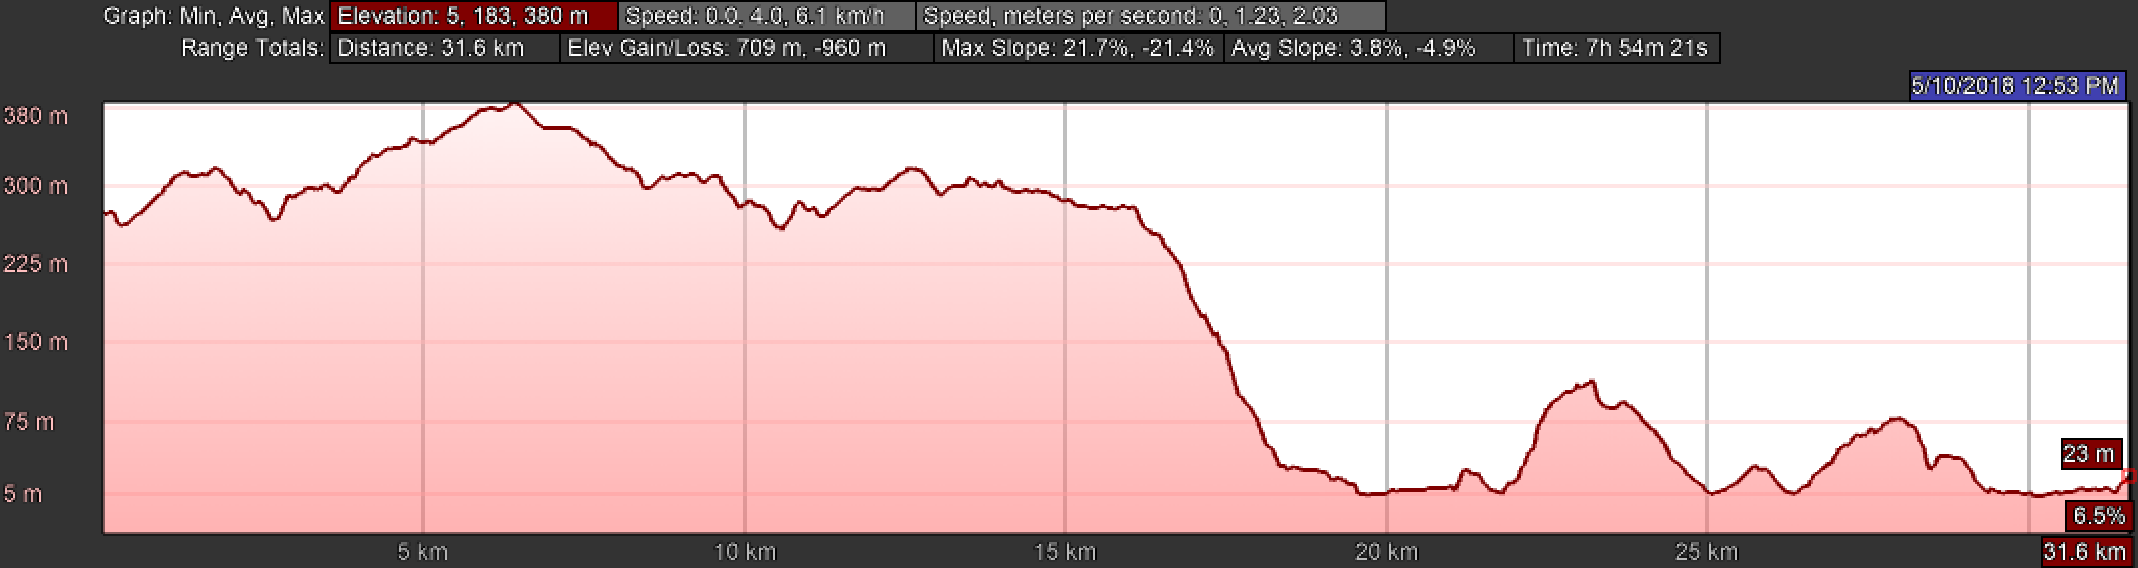 Elevation Profile, Day Three of the Camino Finisterre, Olveiroa to Finisterre